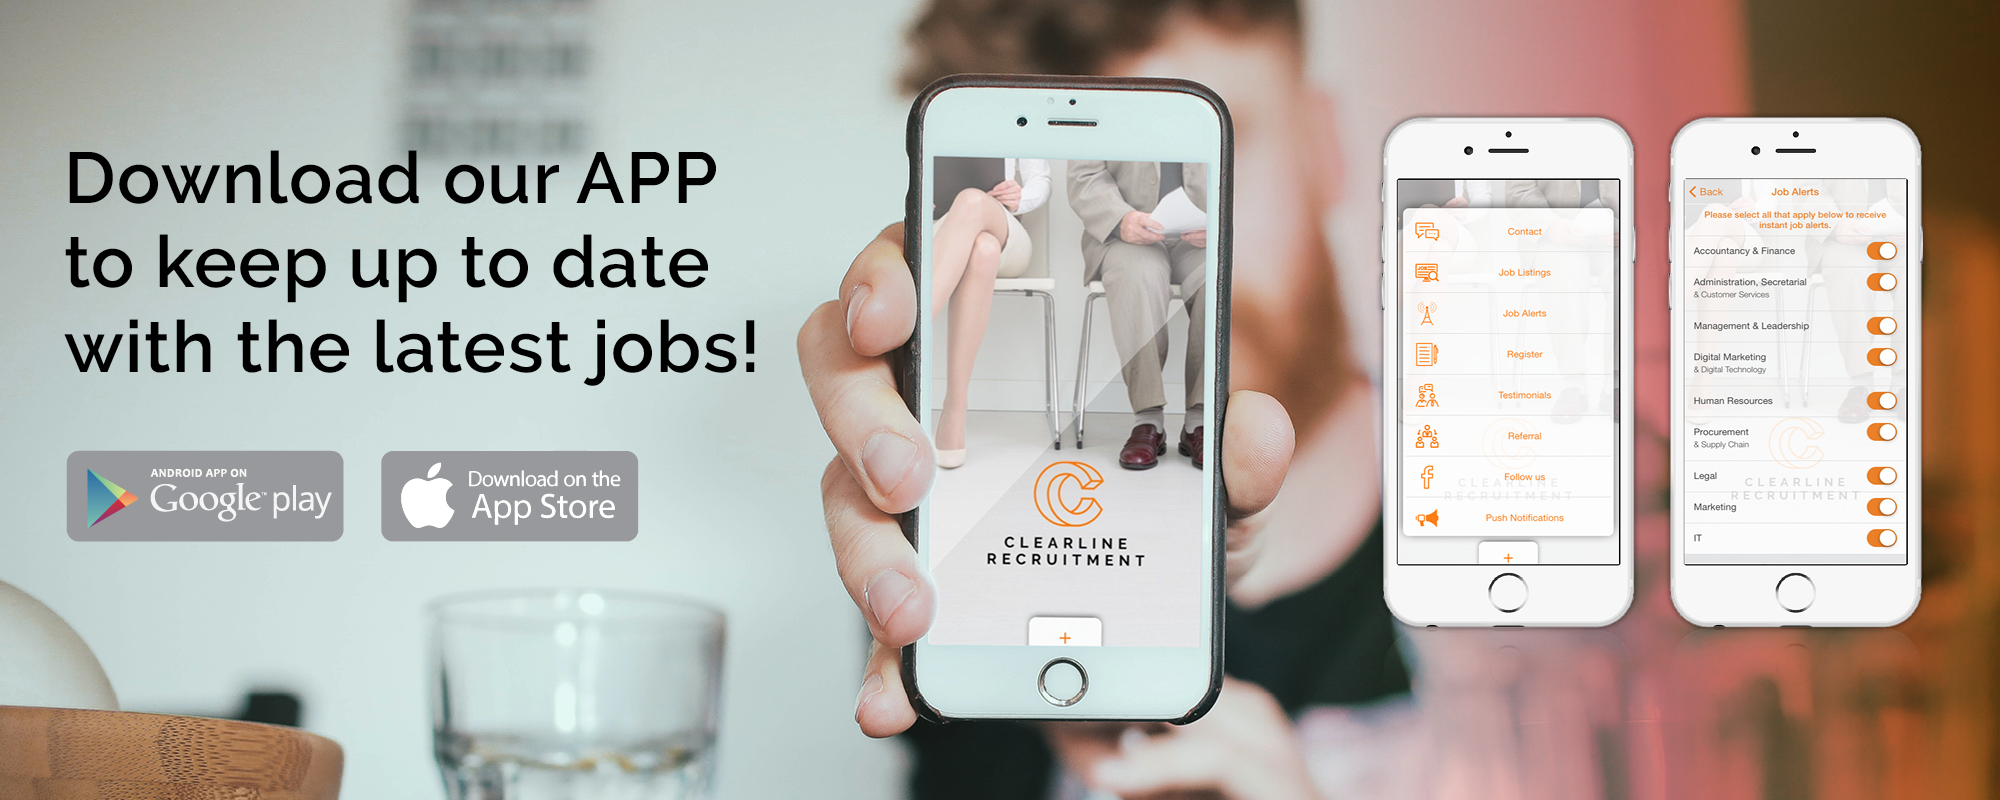 INNOVATIVE RECRUITMENT APP IS A HUGE SUCCESS!